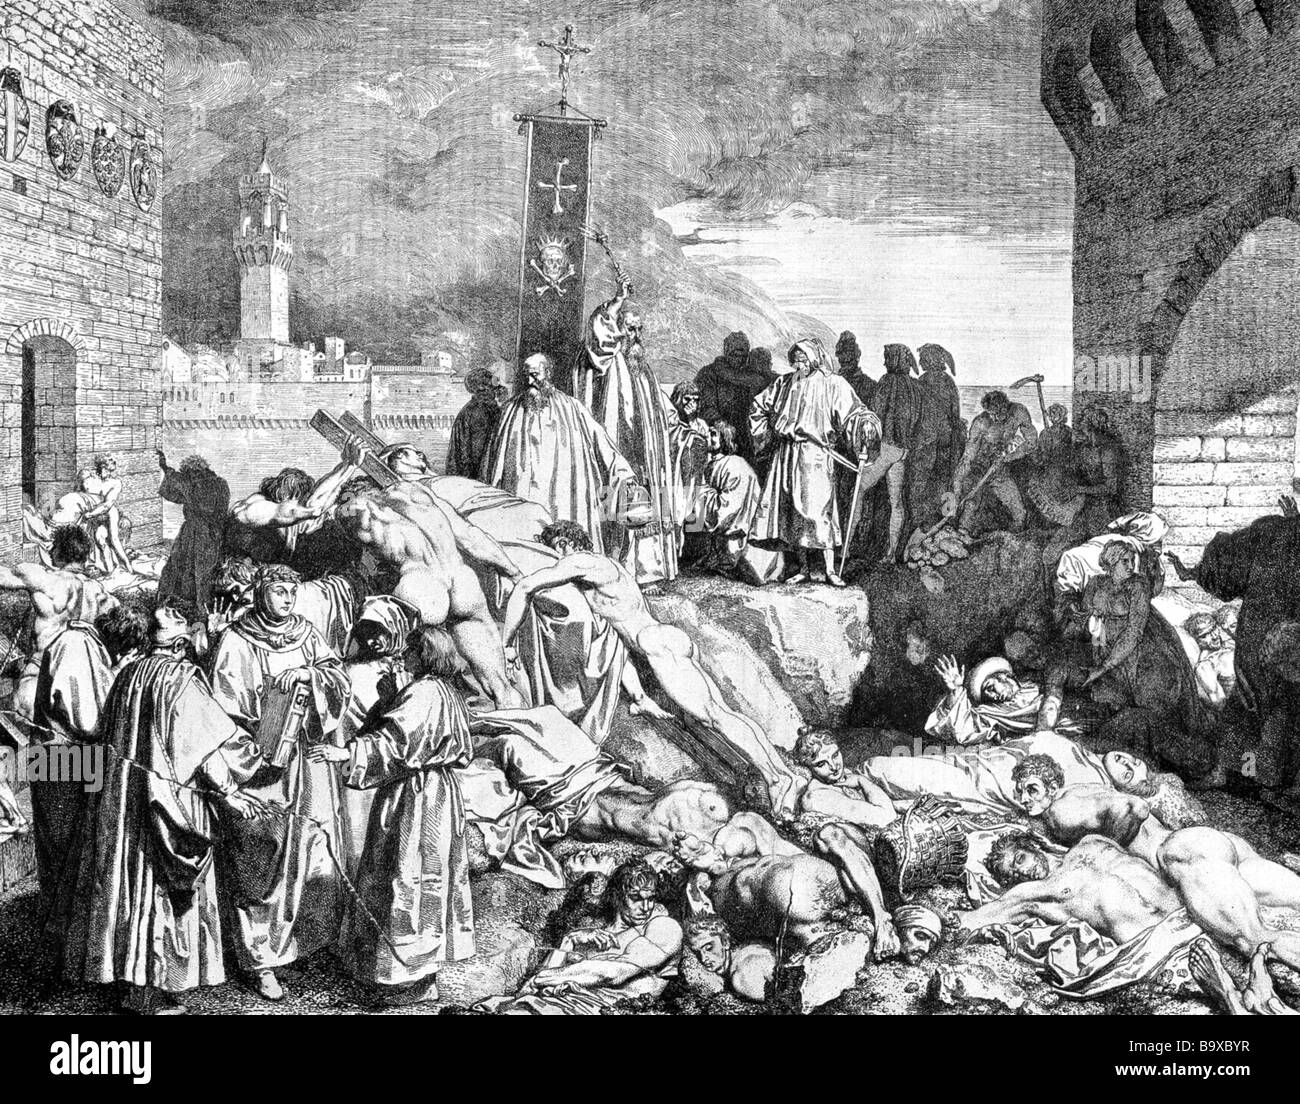 BUBONIC PLAGUE victims in Florence in 1348